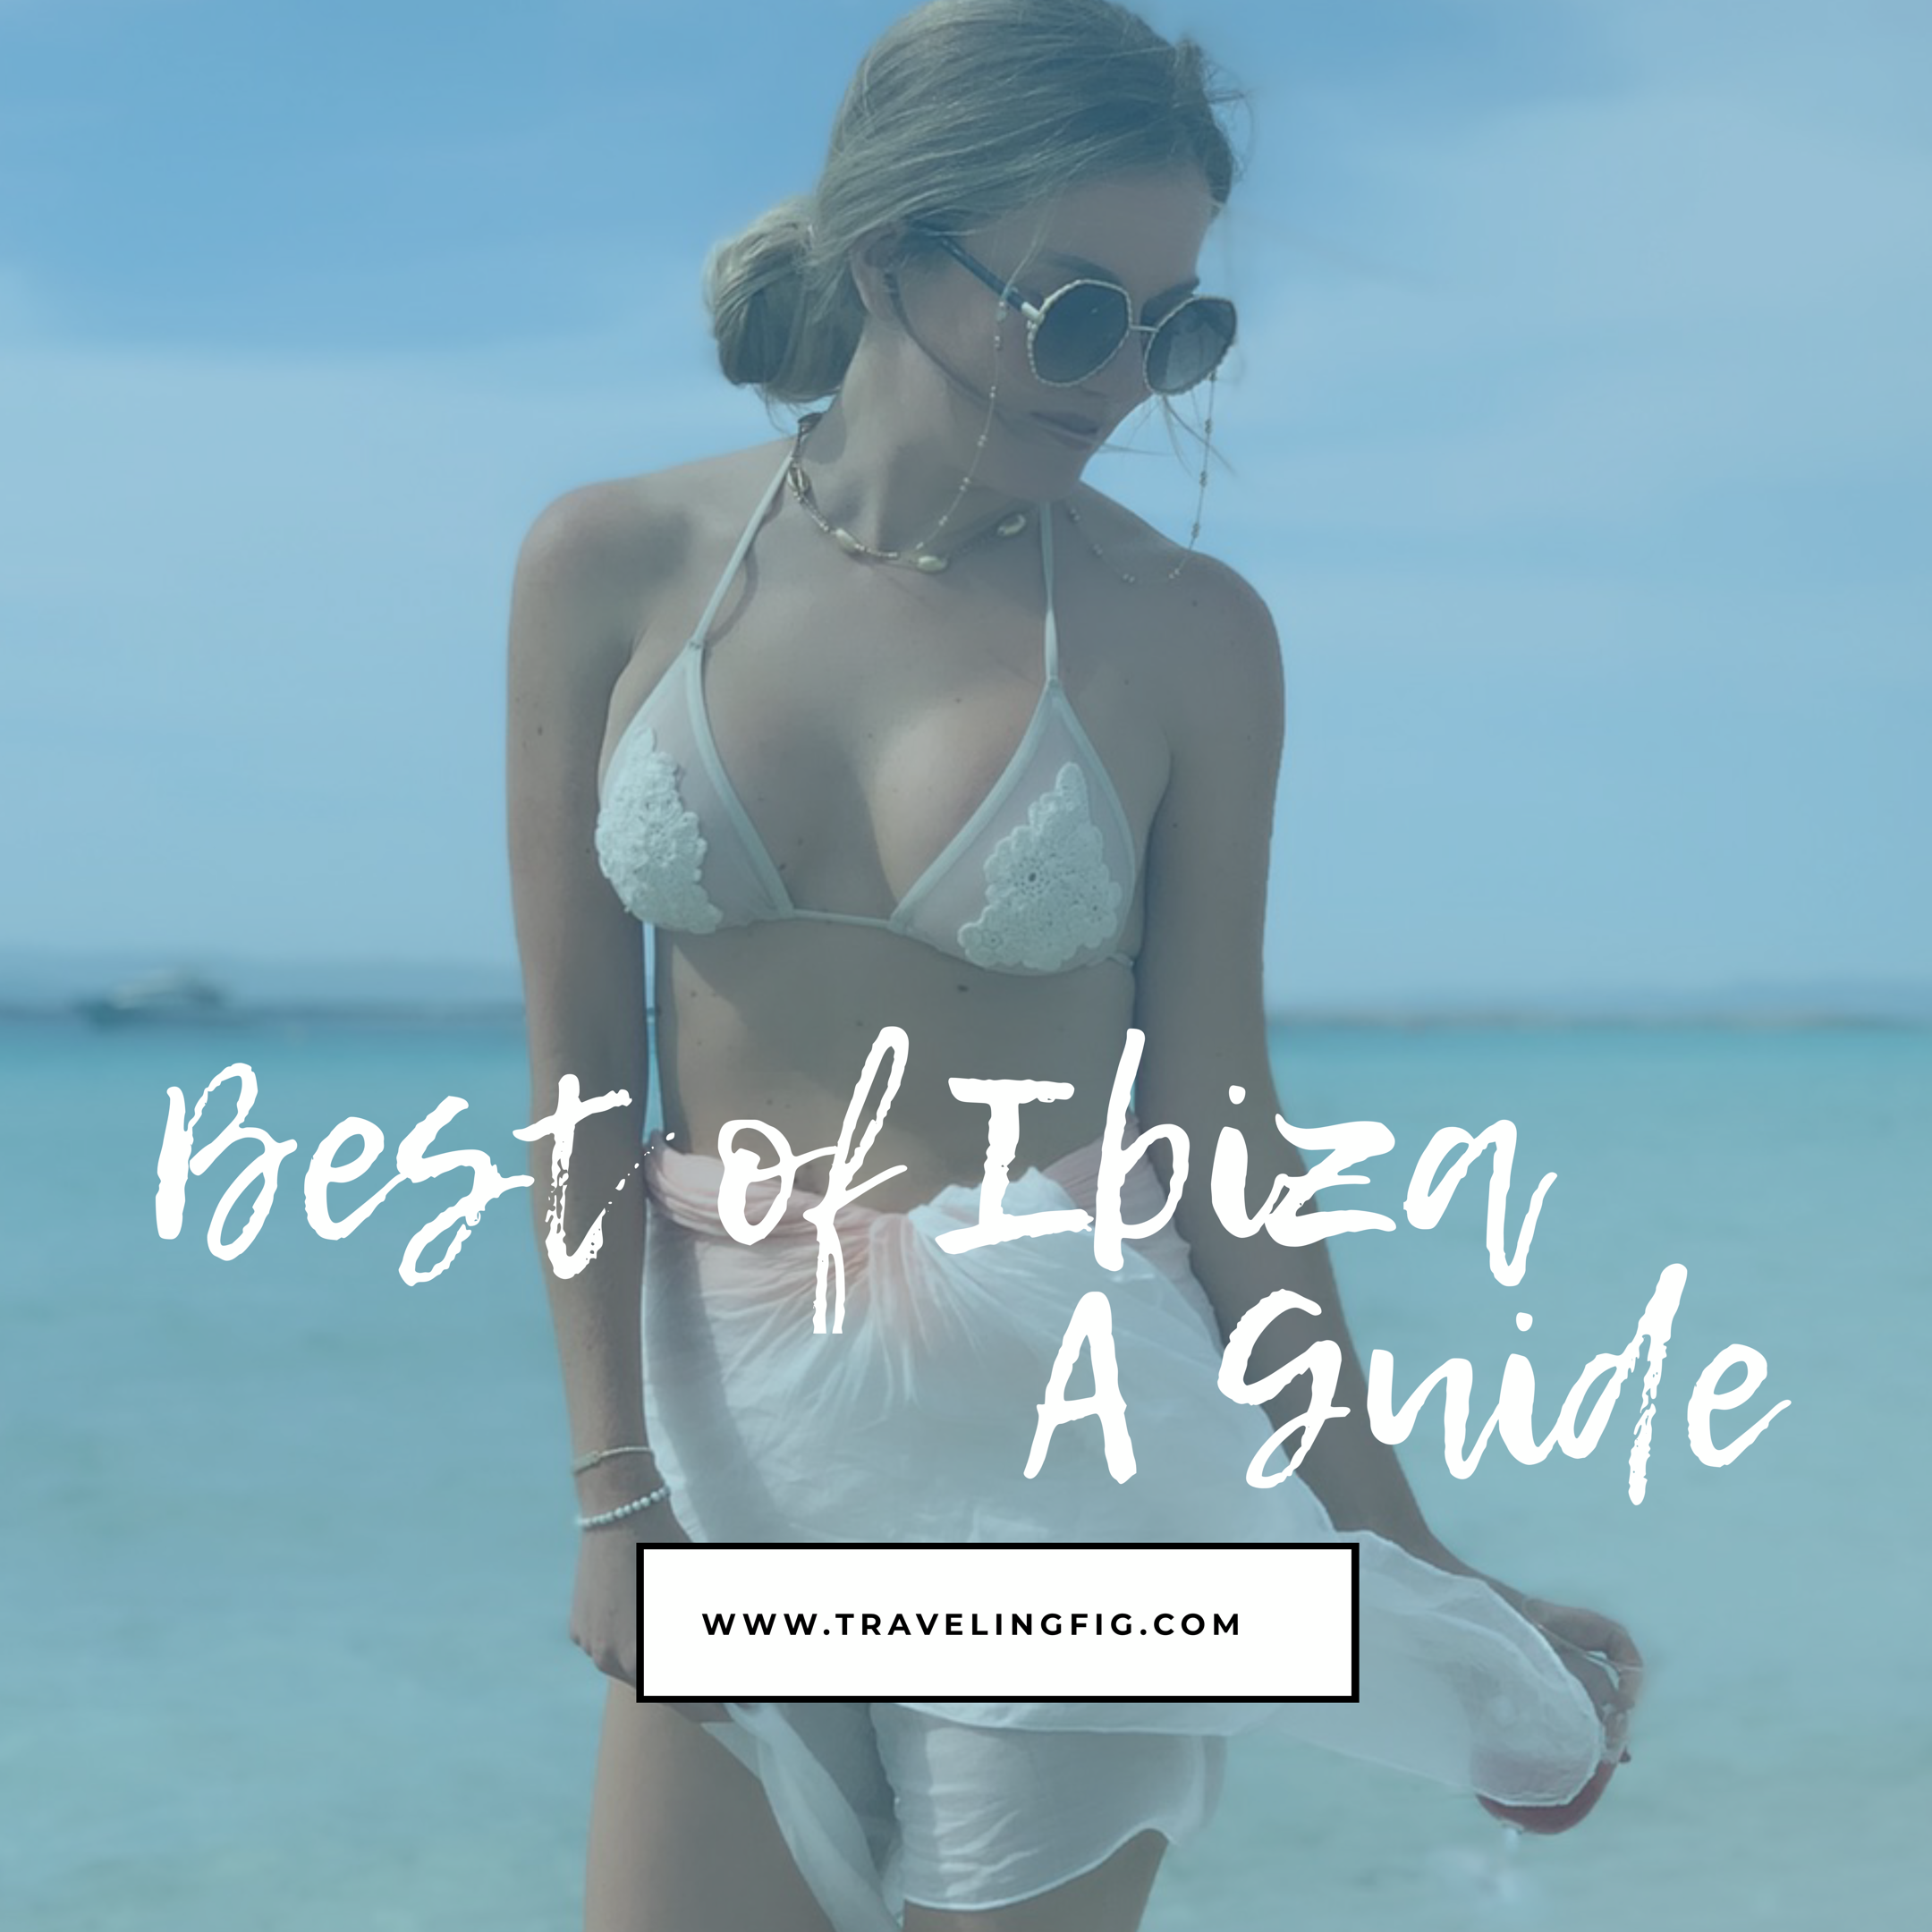 Best of Ibiza! - A Guide